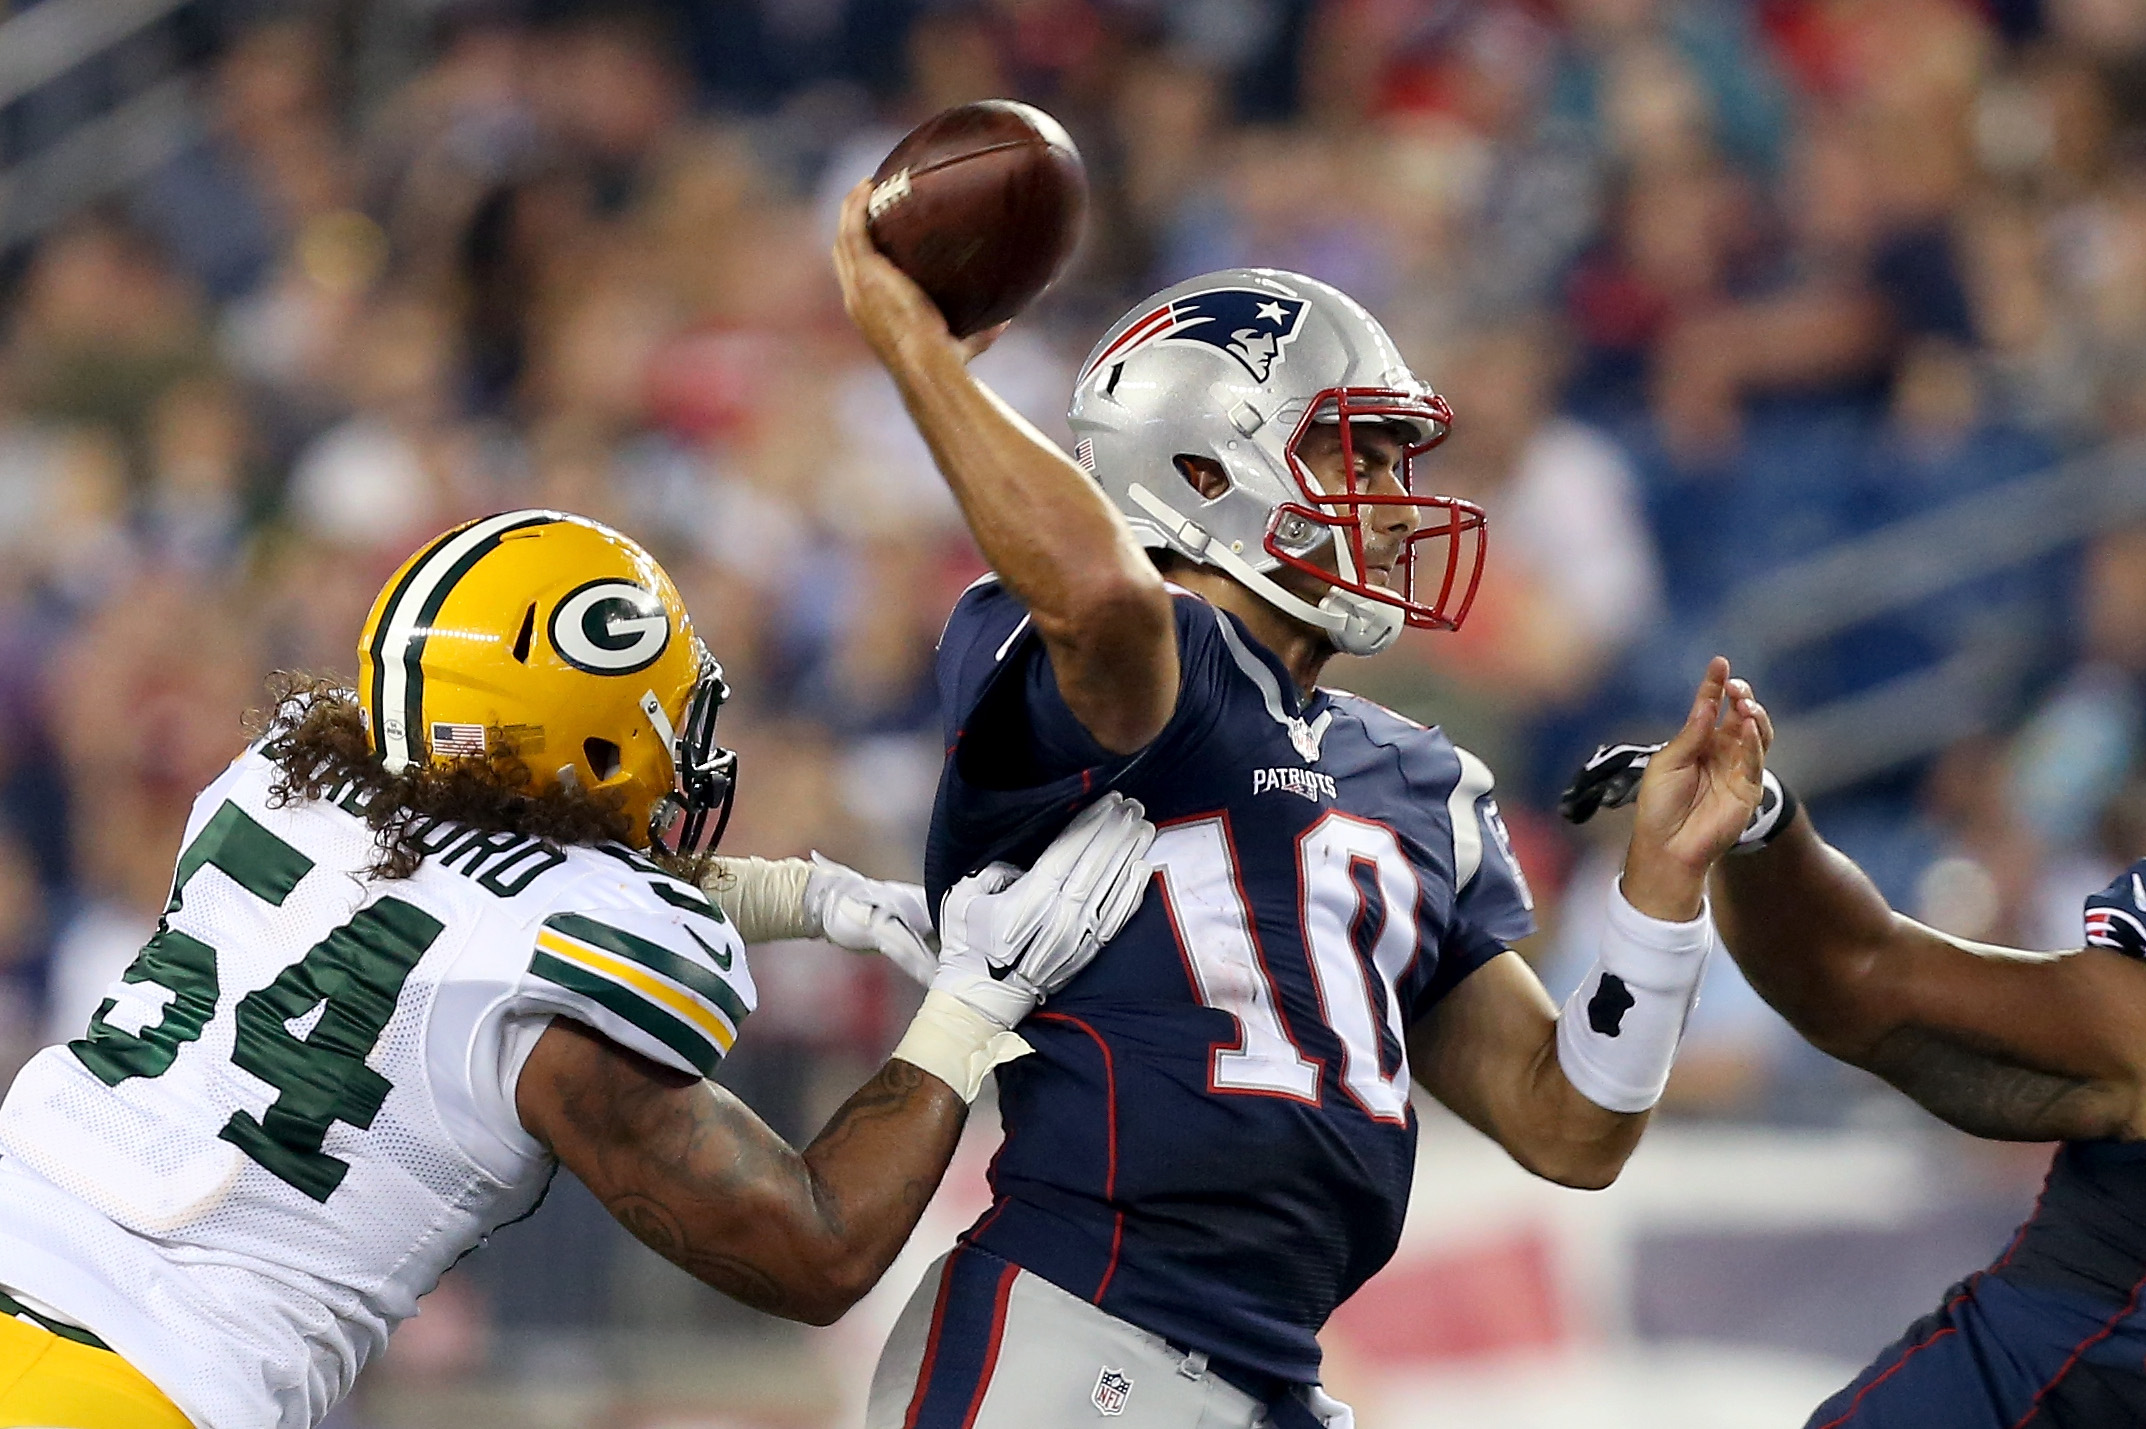 New Bills linebacker Carl Bradford, as a member of the Packers, hits Patriots quarterback Jimmy Garoppolo.  (Photo by Mike Lawrie/Getty Images)